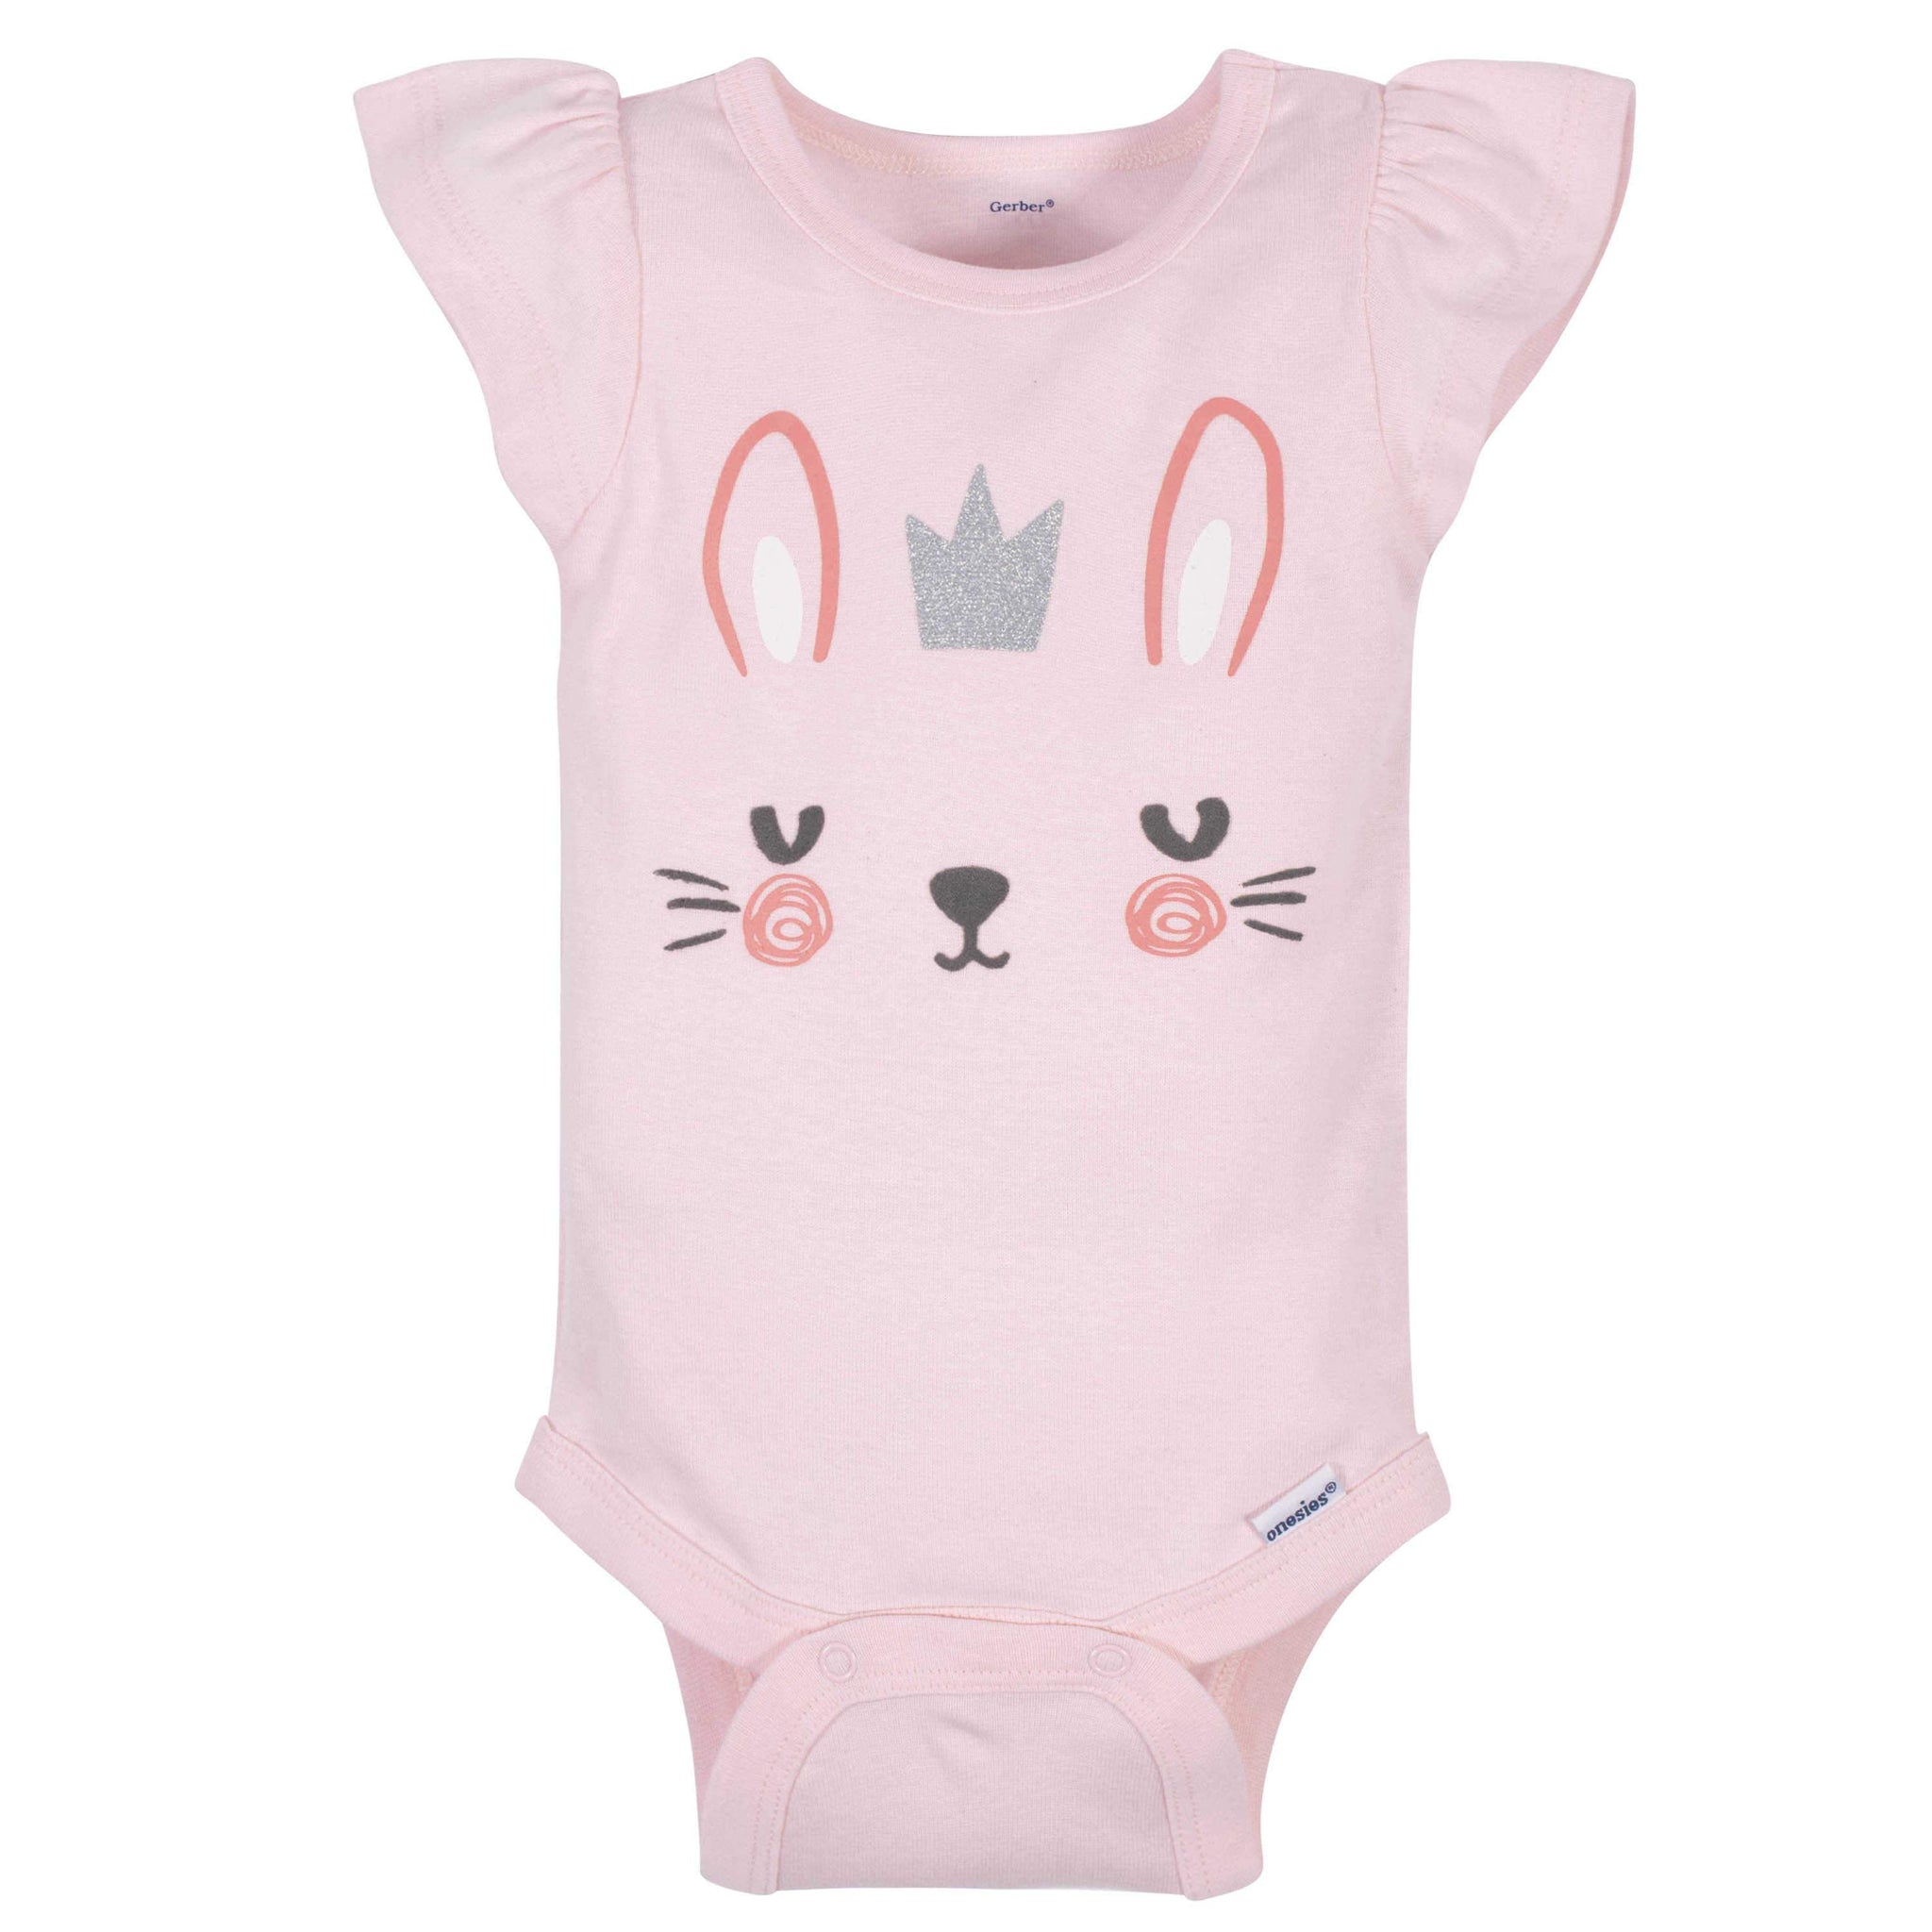 4-Pack Baby Girls Bunny Short Sleeve Onesies Bodysuits